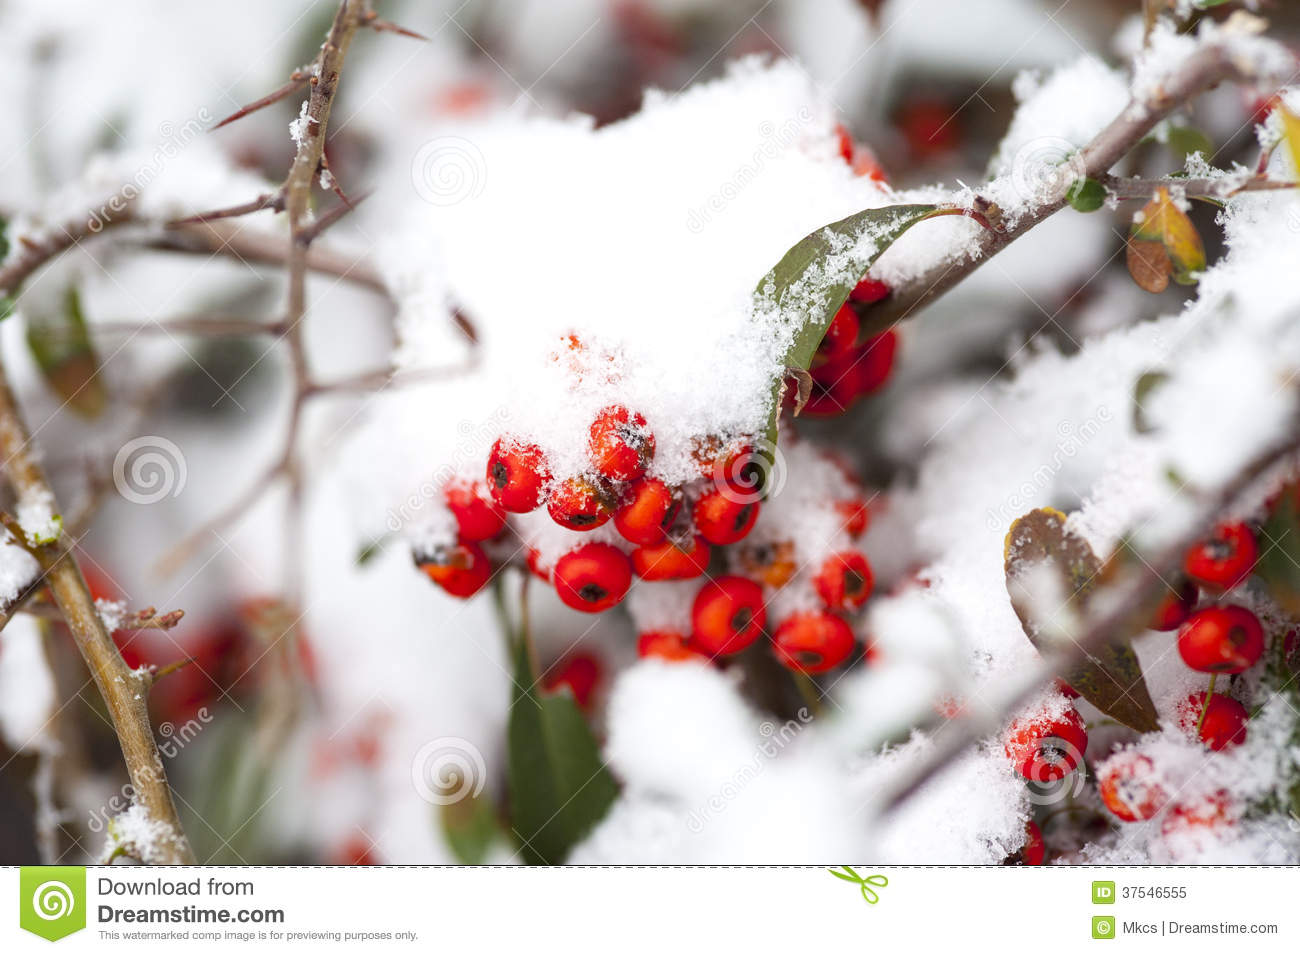 Rose hips in the white snow